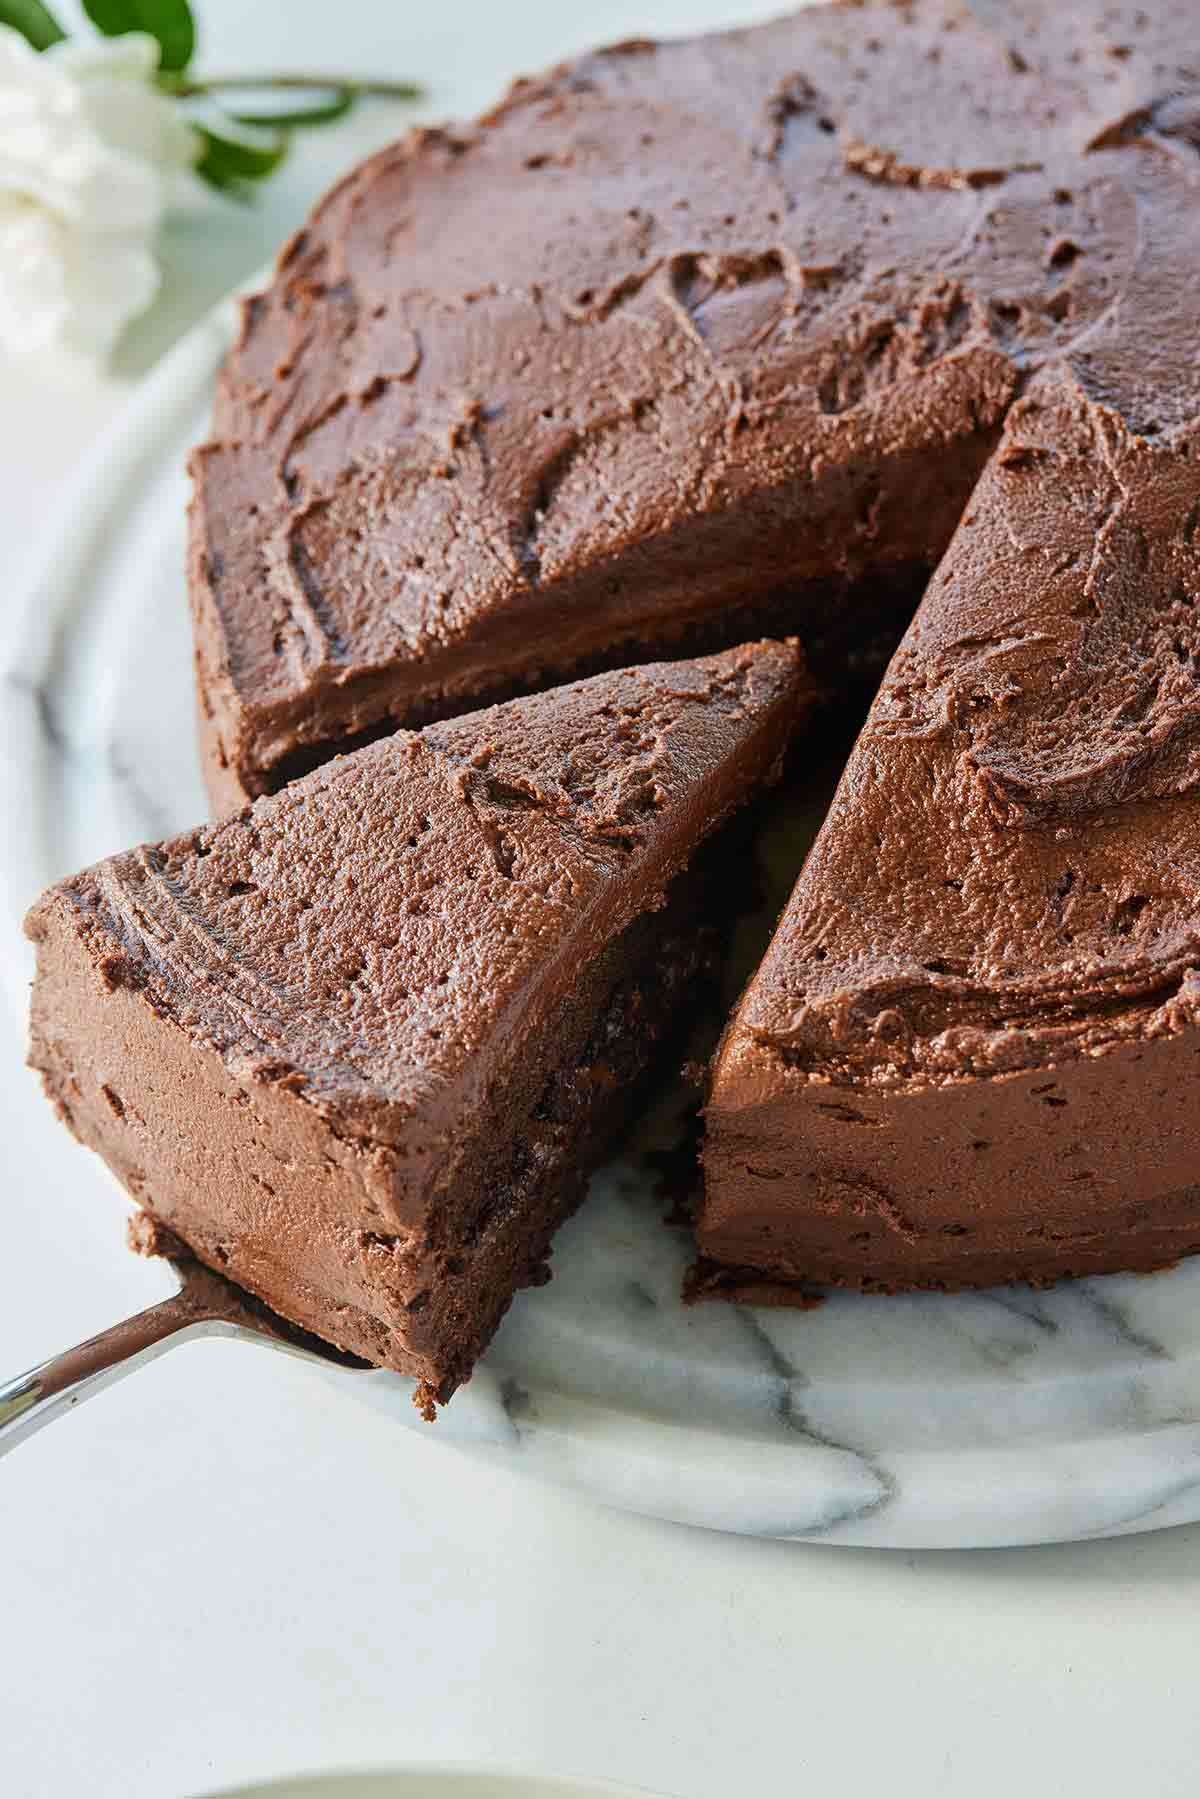 A vegan chocolate cake with chocolate frosting with a slice of the cake being removed with a cake server.